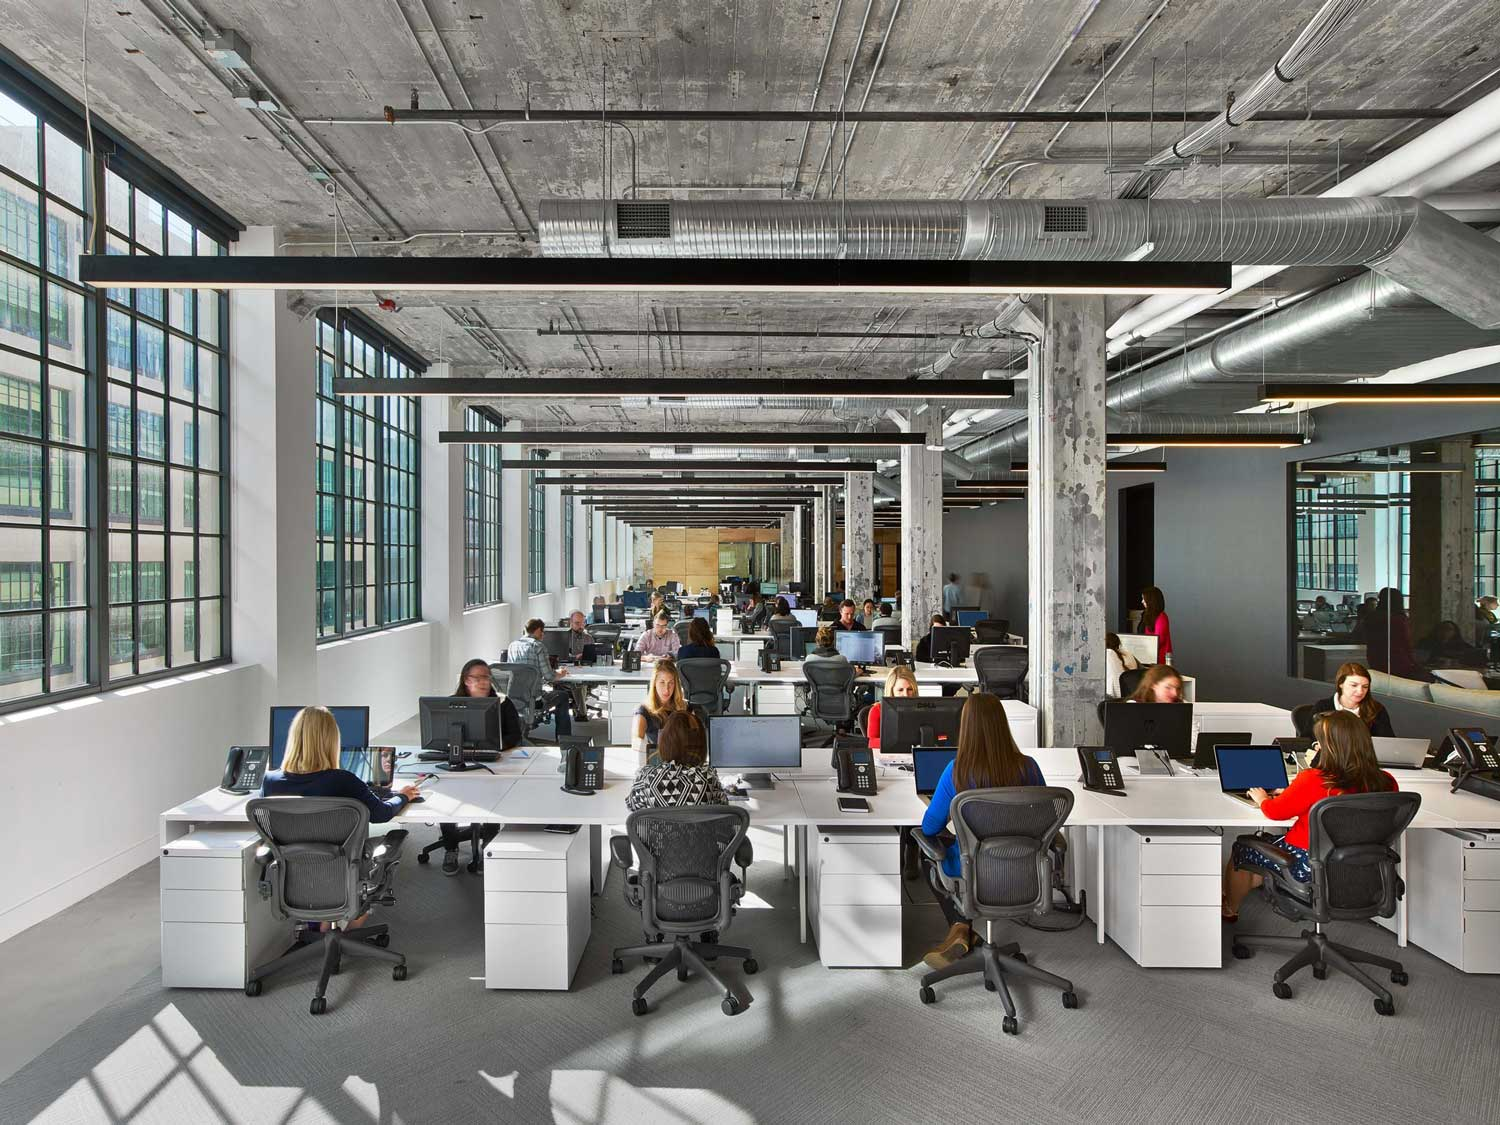 Mullenlowe ad agency office in winston salem us by tpg for Design agency singapore